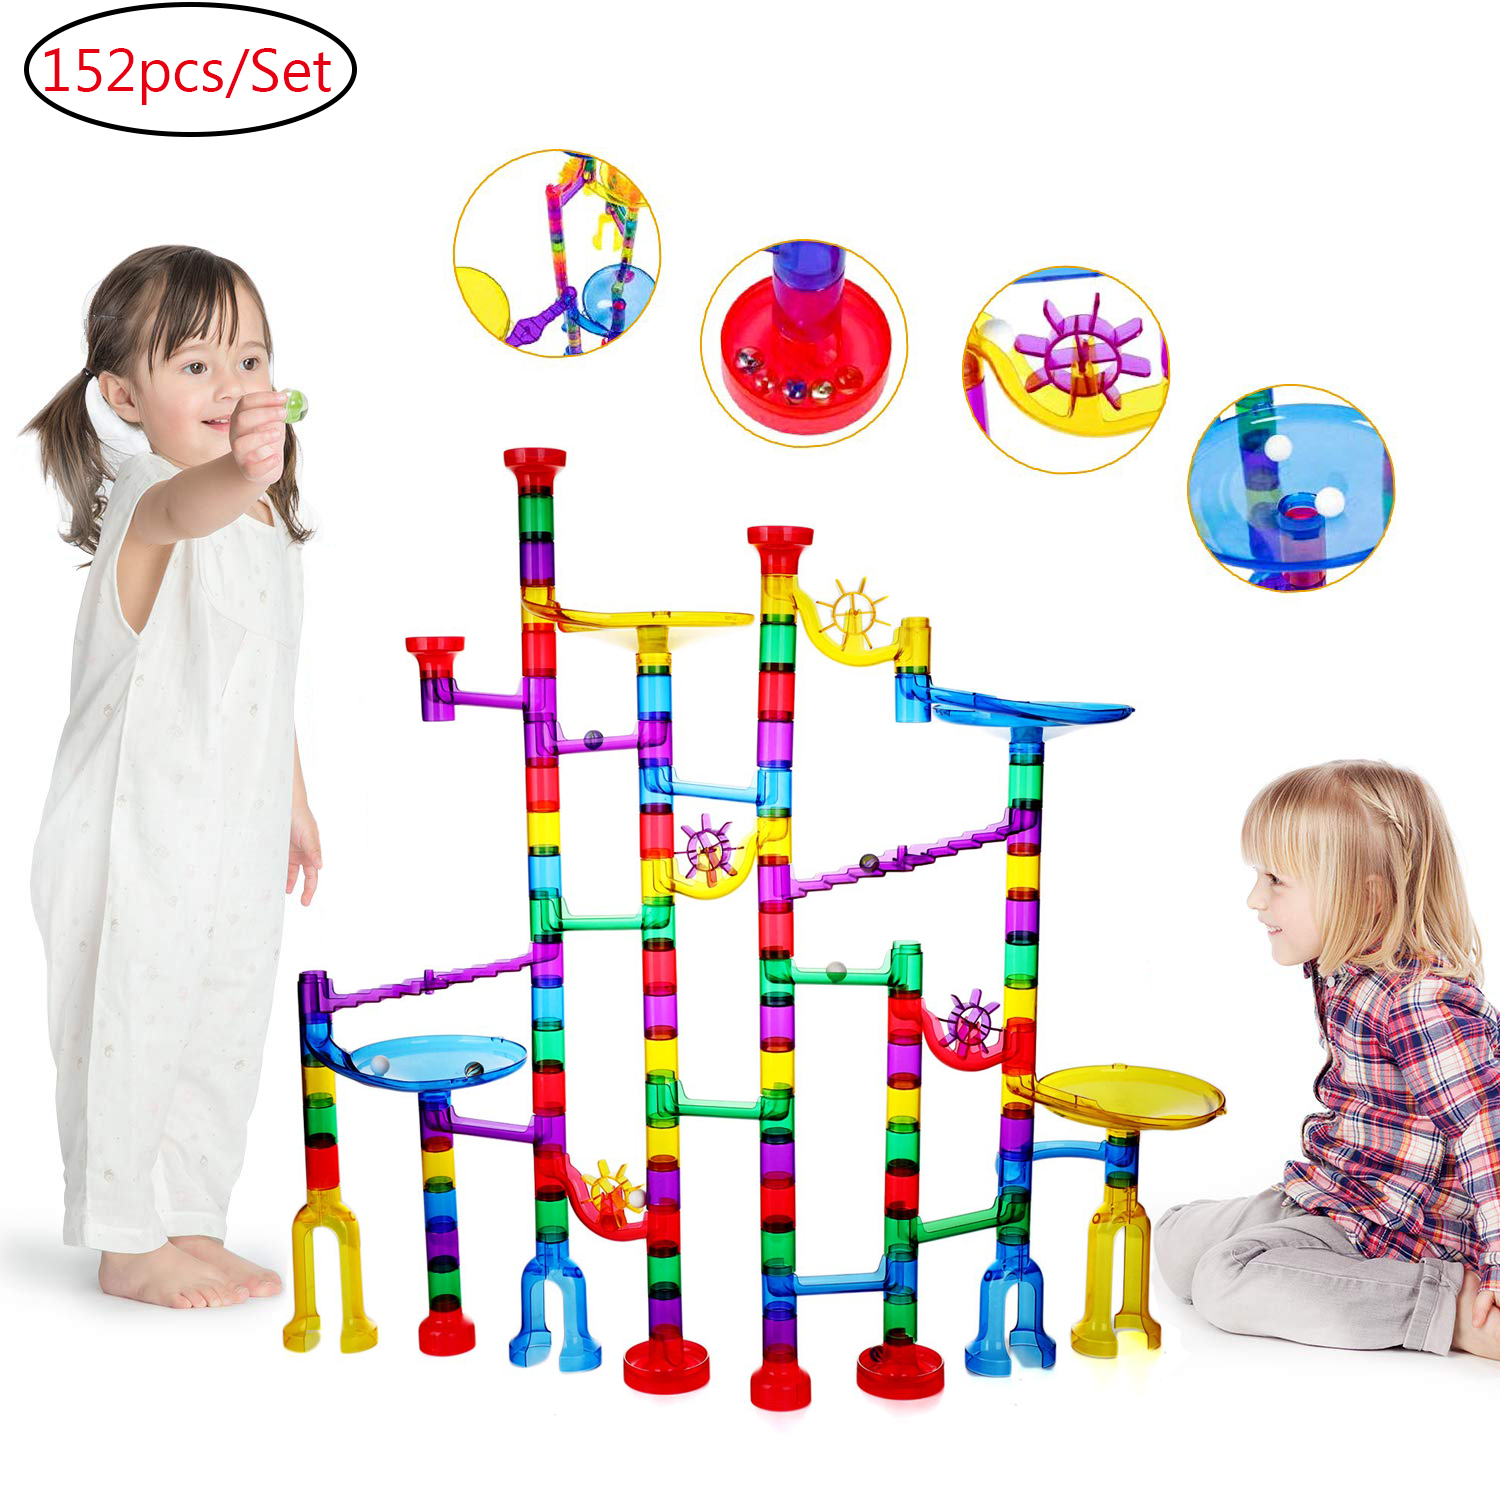 Marble Run Set,105 PCS Marble Race Track Toy for Kids,Construction Building Blocks Stem Toys Game for 4-9 Year Old Kids, Marble Maze 75 Complete Pieces+30 PCS Glass Marbles + Installation Manual